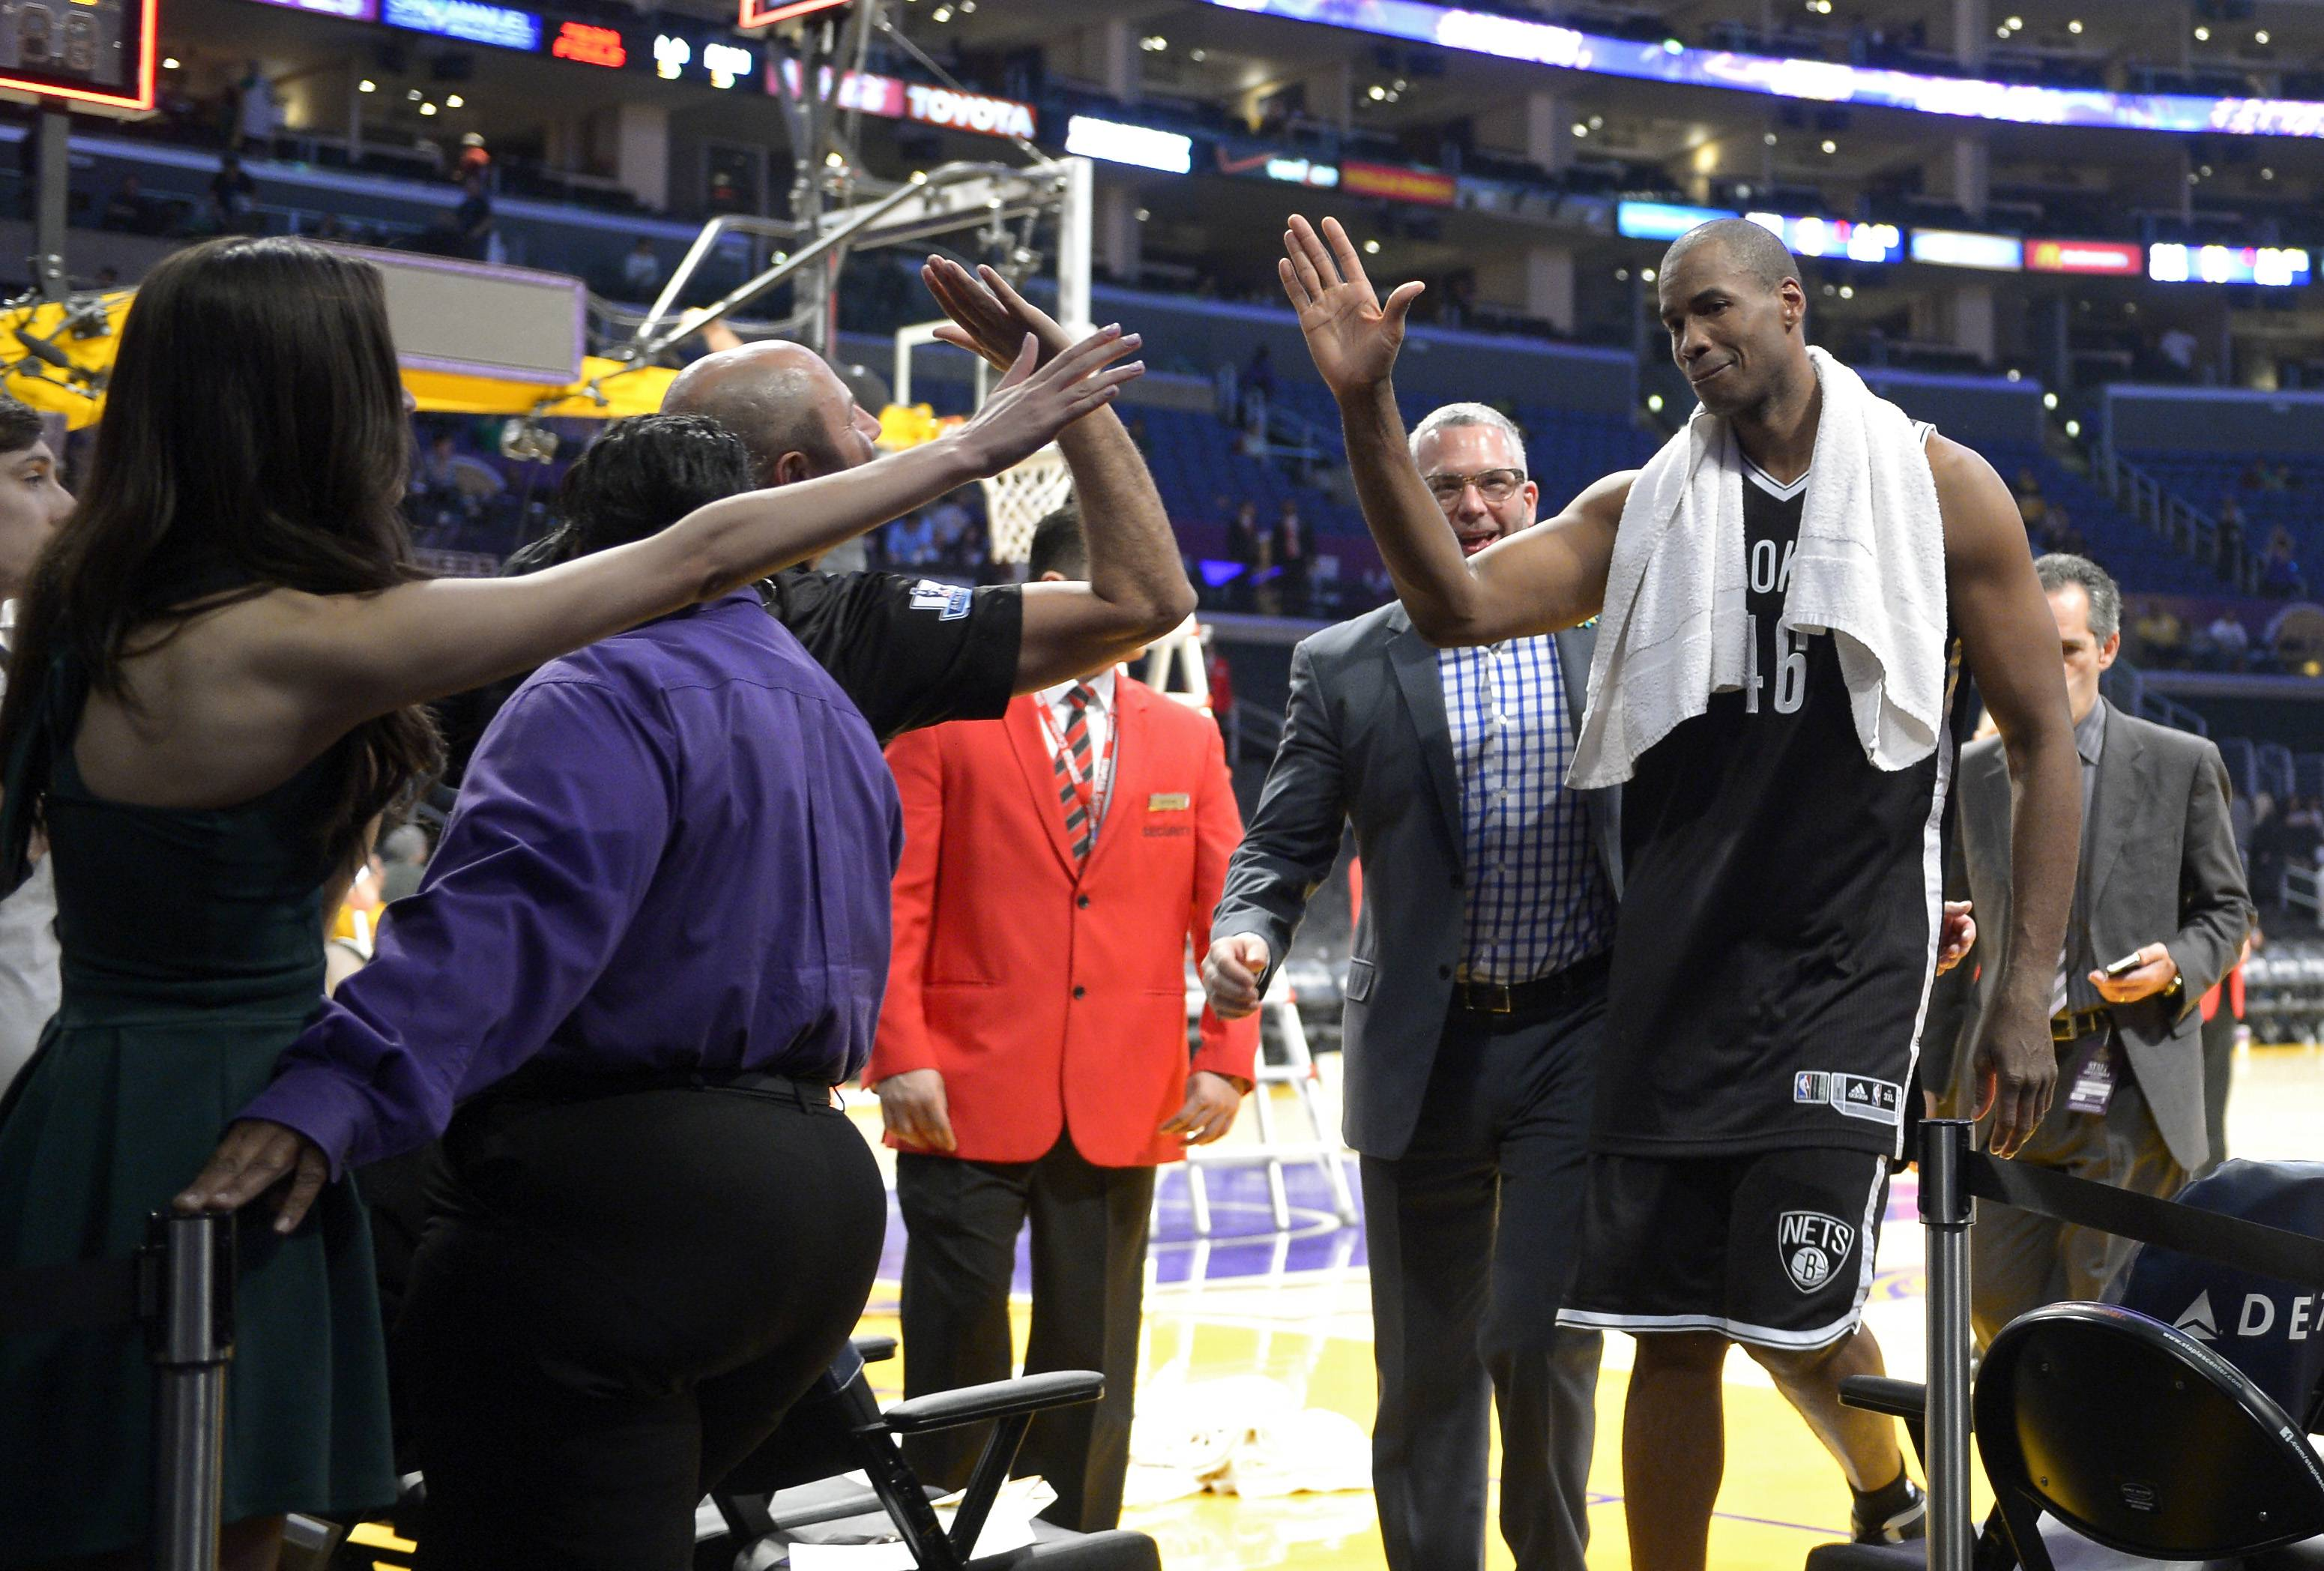 Brooklyn Nets center Jason Collins, right, is congratulated by fans after they defeated the Los Angeles Lakers in an NBA basketball game Sunday in Los Angeles. Brooklyn won 108-102.